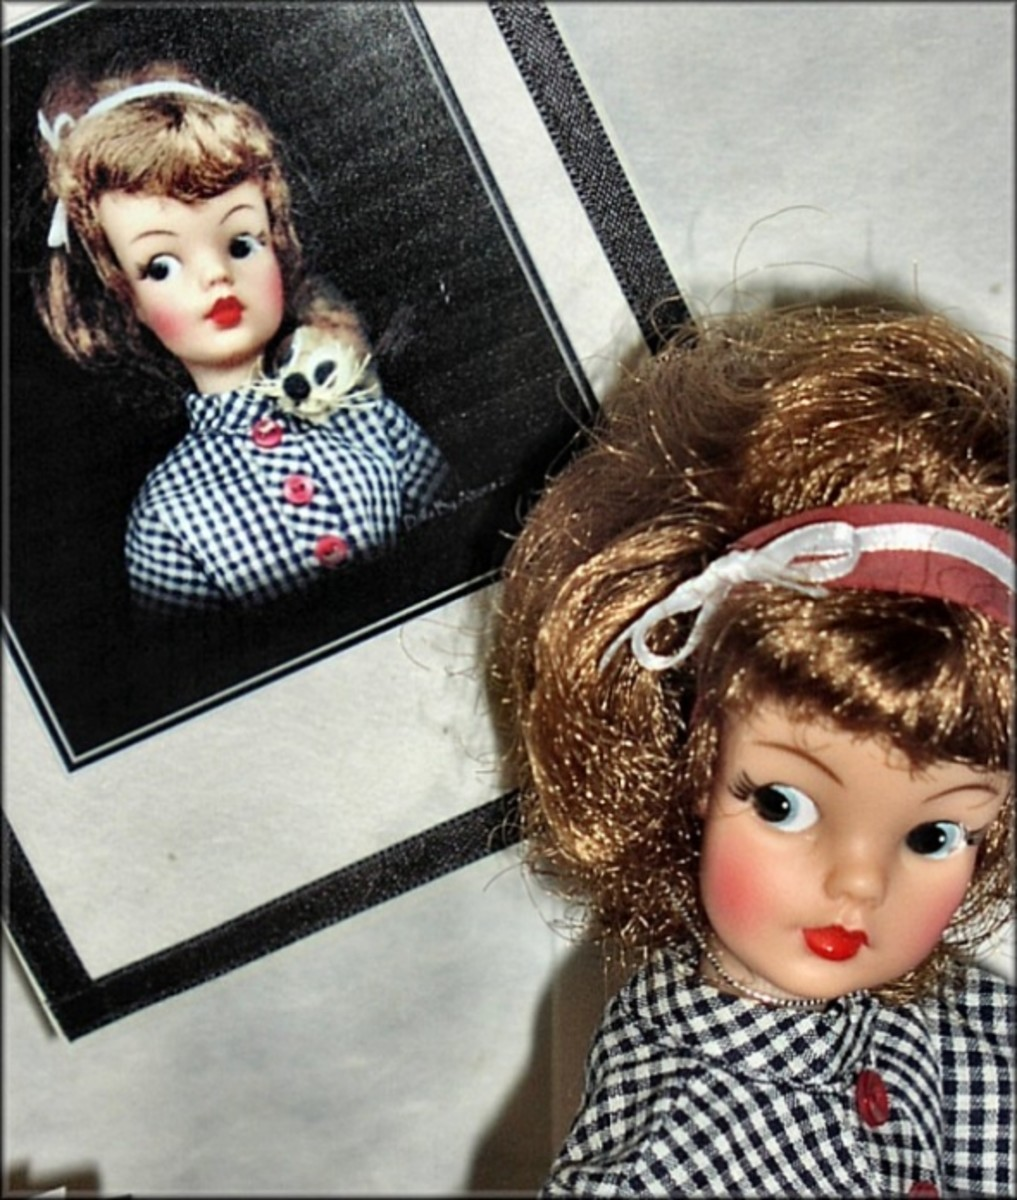 Tammy's hair was restyled  again as shown above for her auction photo session.  The coordinated rubber headband and ribbon secures her hair style as she travels to her new home. This doll's makeup is all original.  There was no need for touch-ups.